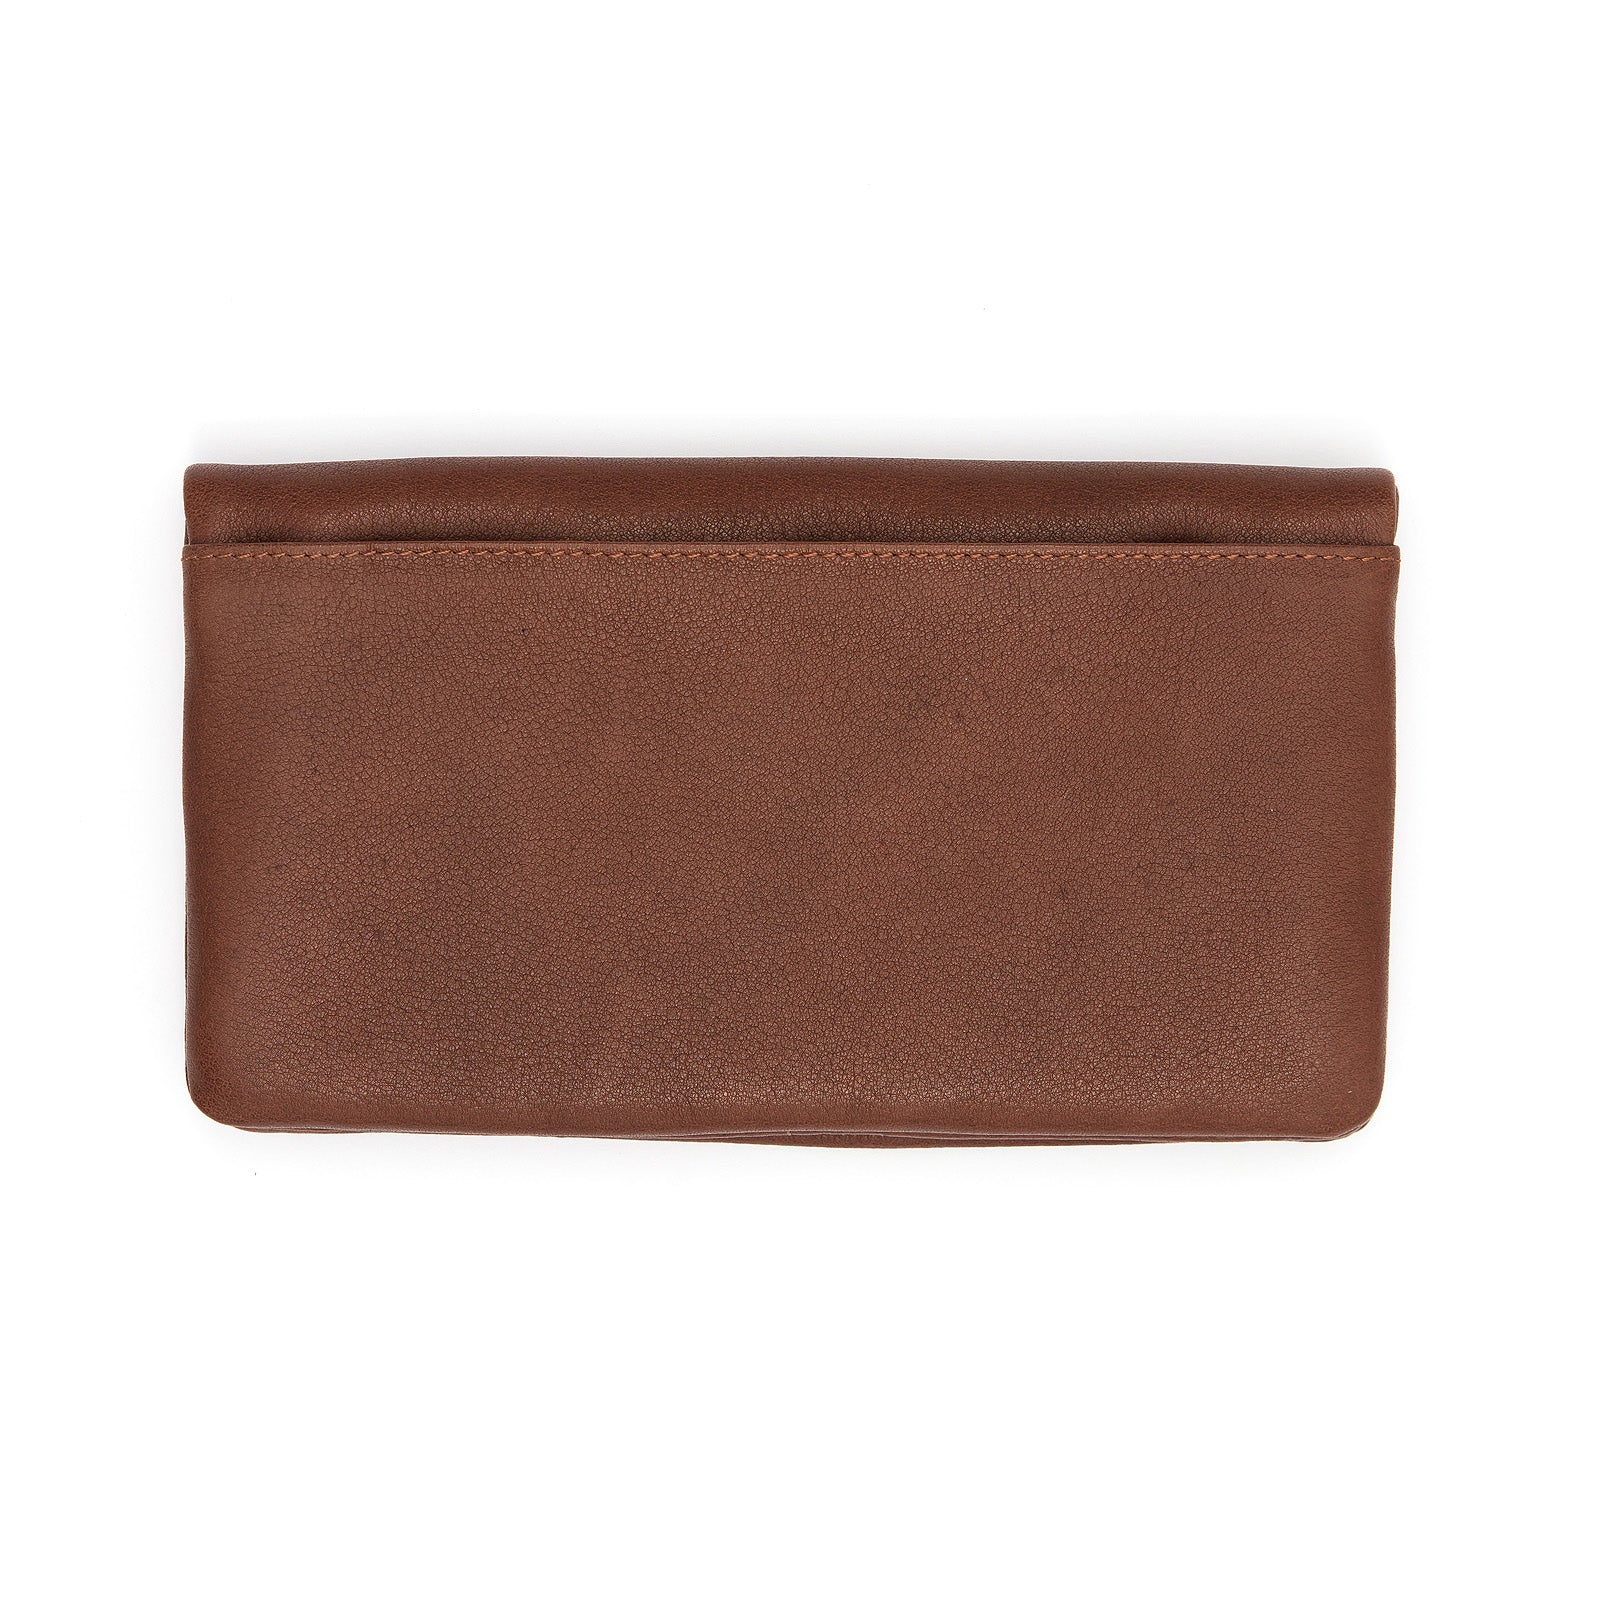 Voyager wallet